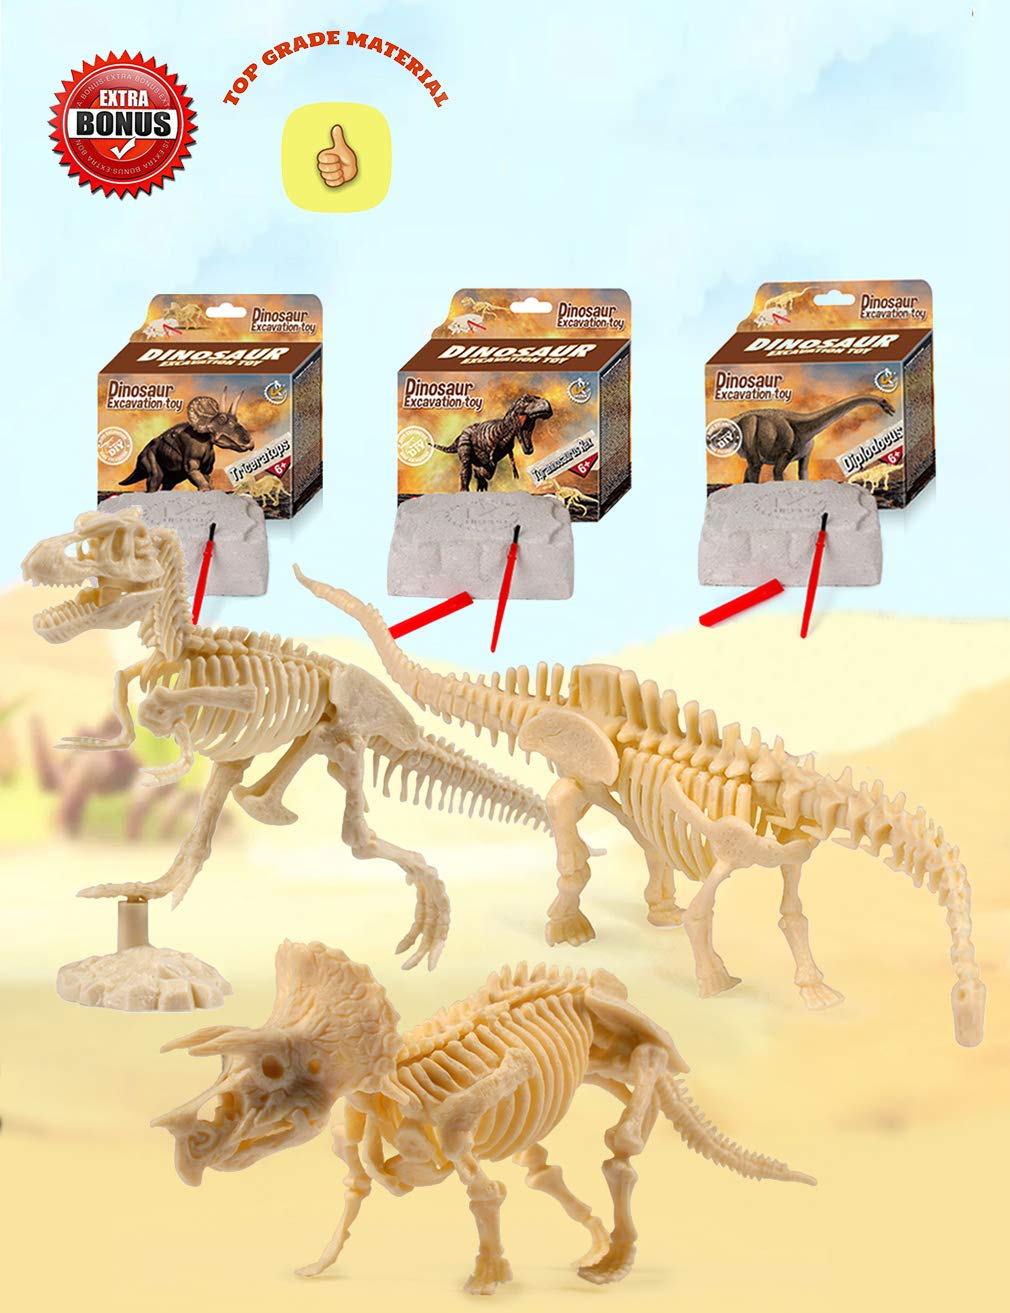 Dinosaur Excavation Kits For Kids,Dino Dig Kits T-Rex,Triceratops and Diplodocus,Dinosaur Fossil Excavation Kits ,Children's Popular Science Education Toys - Dinosaur DIY Toys(Three-piece suit) by AKINGSHOP